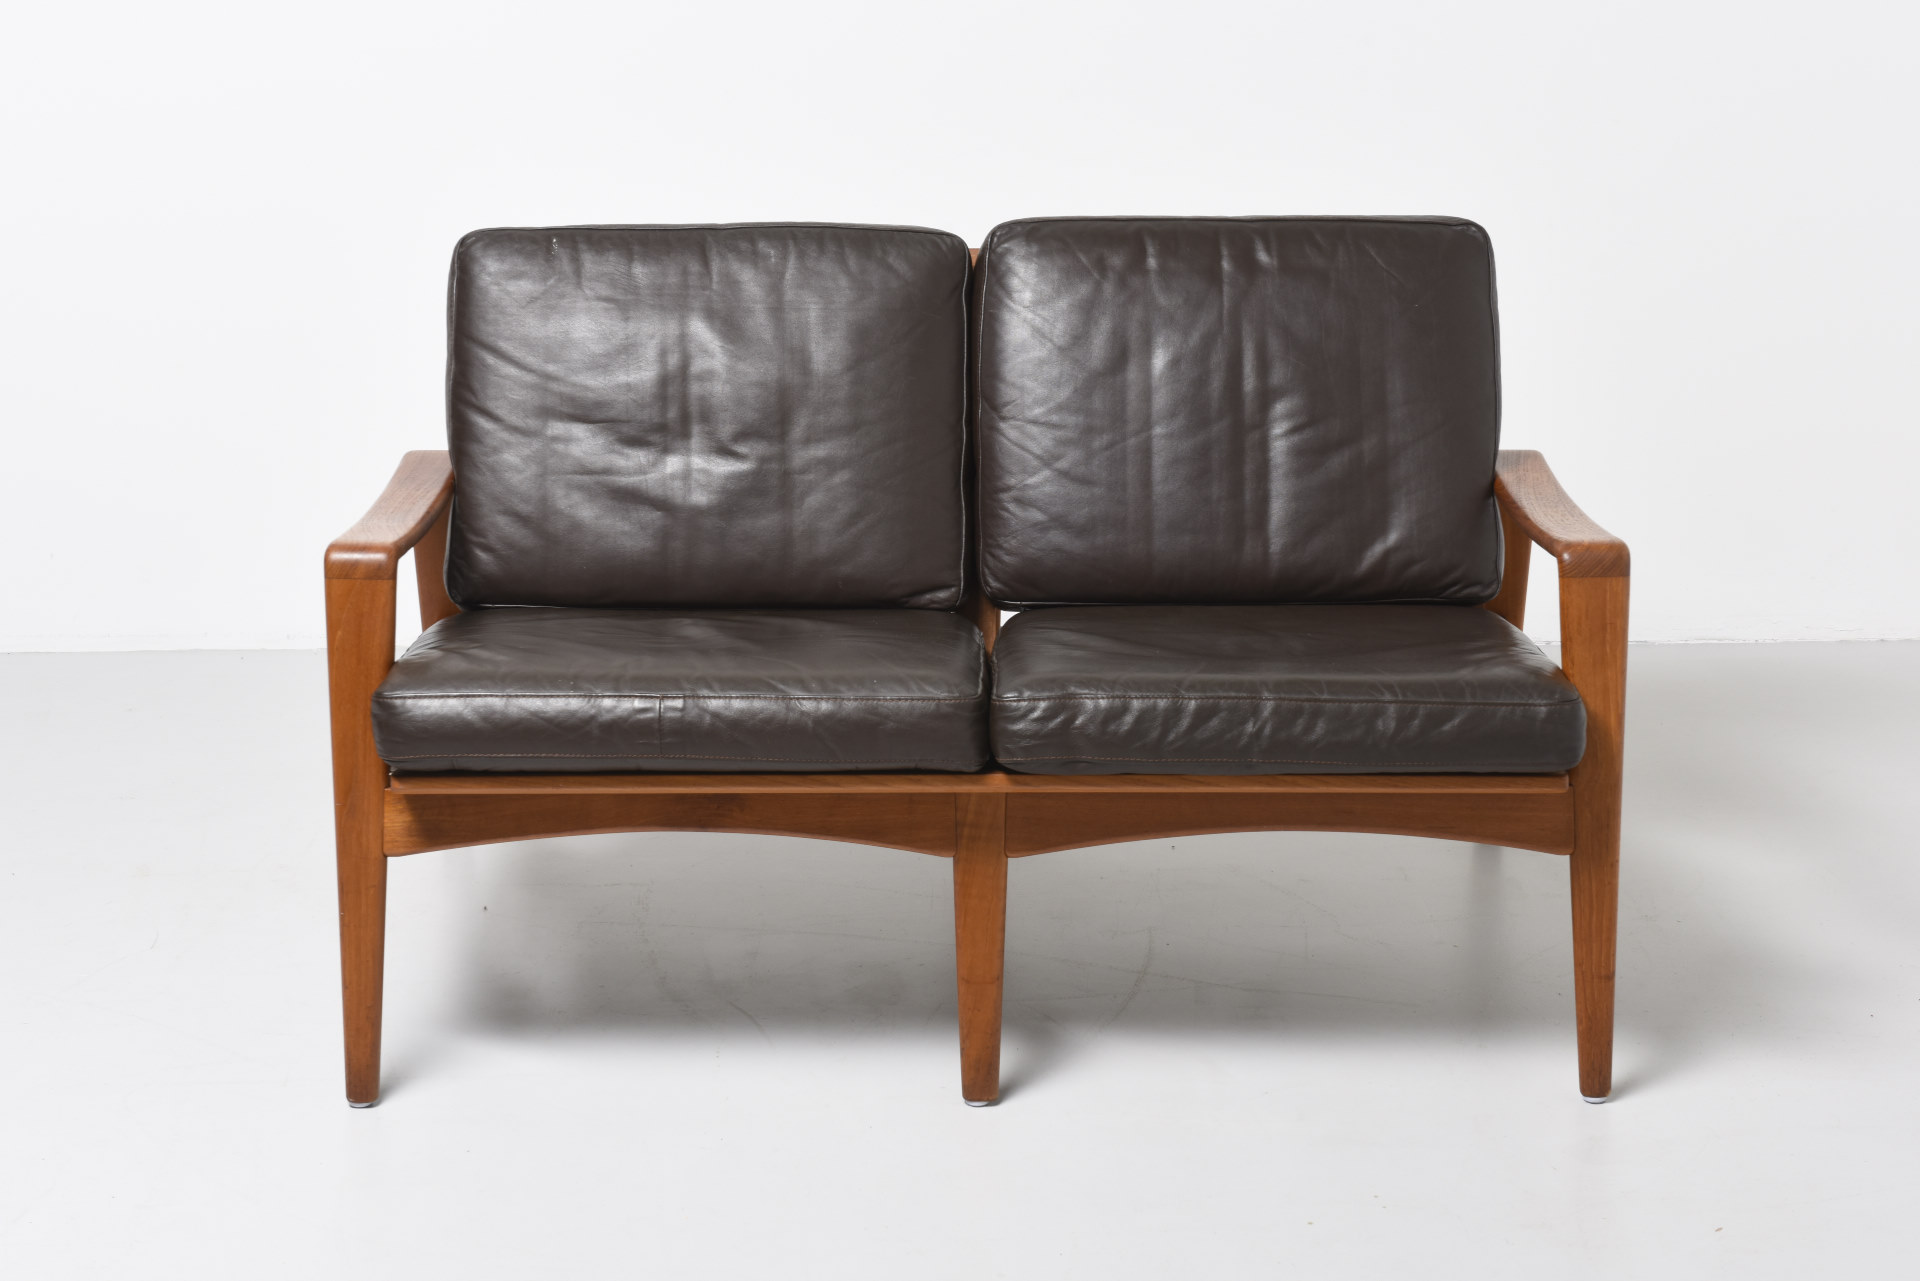 a 2 seat sofa in teak arne wahl iversen archive modest furniture